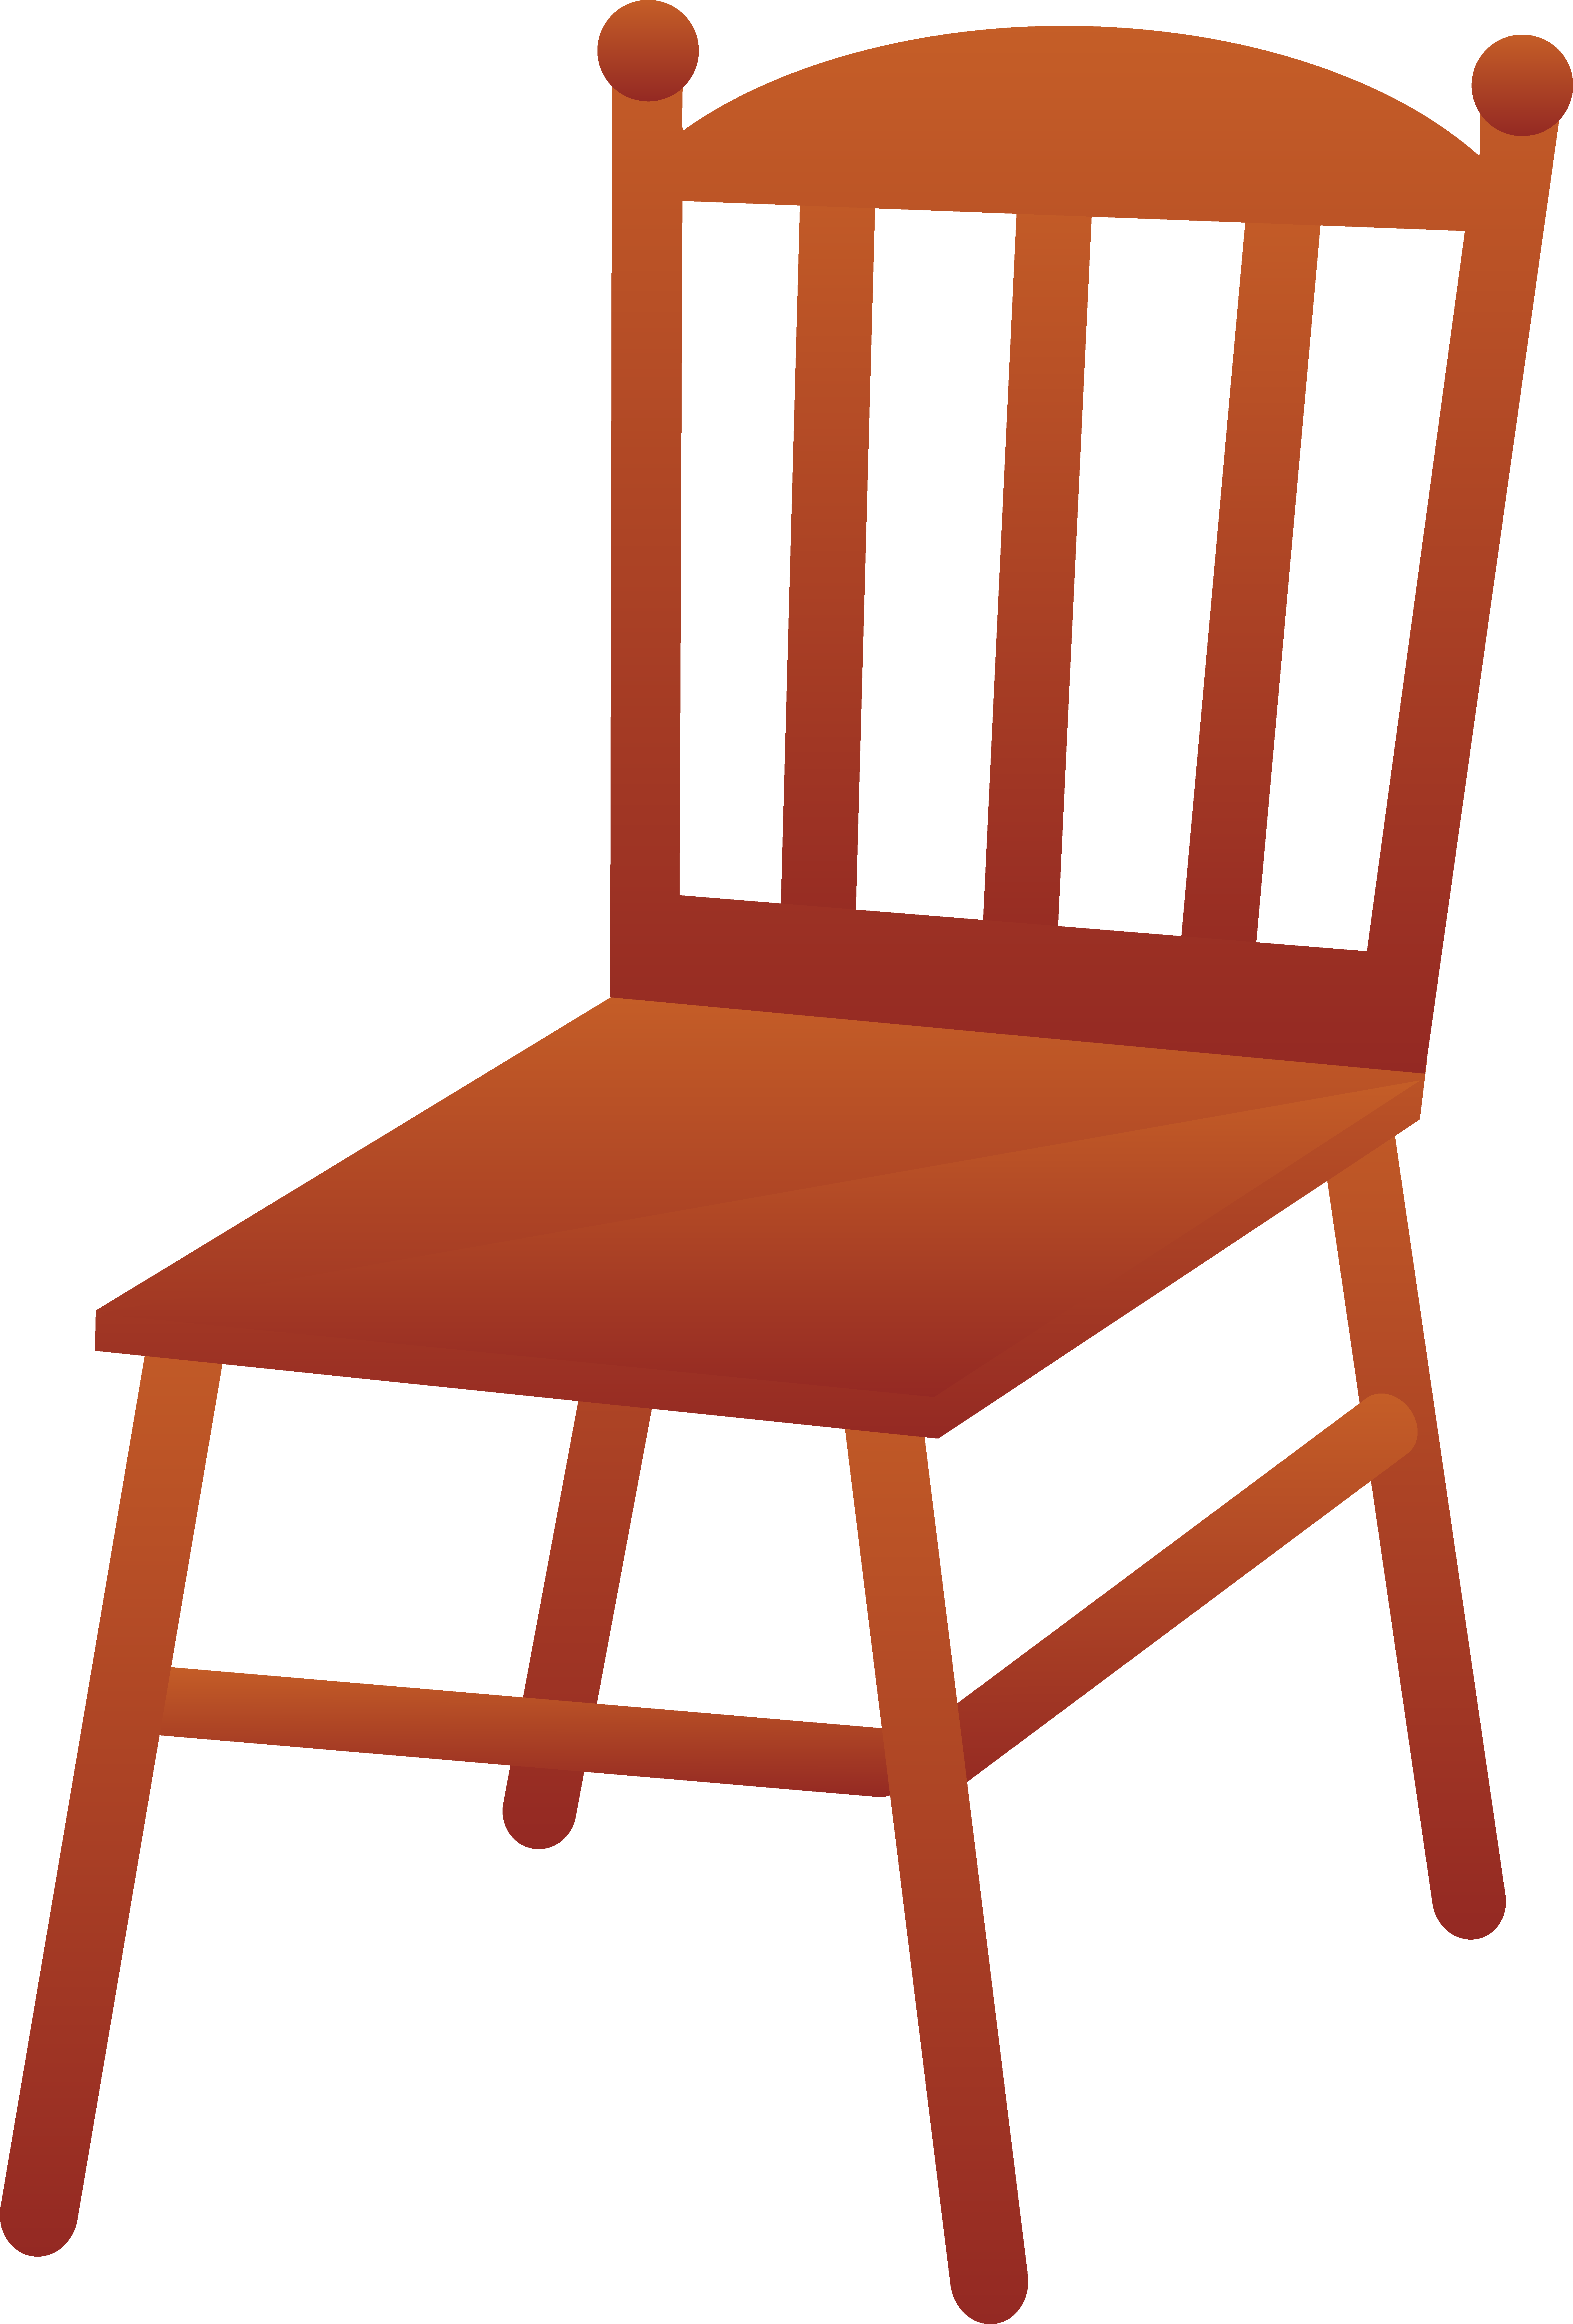 Chair clipart #6, Download drawings